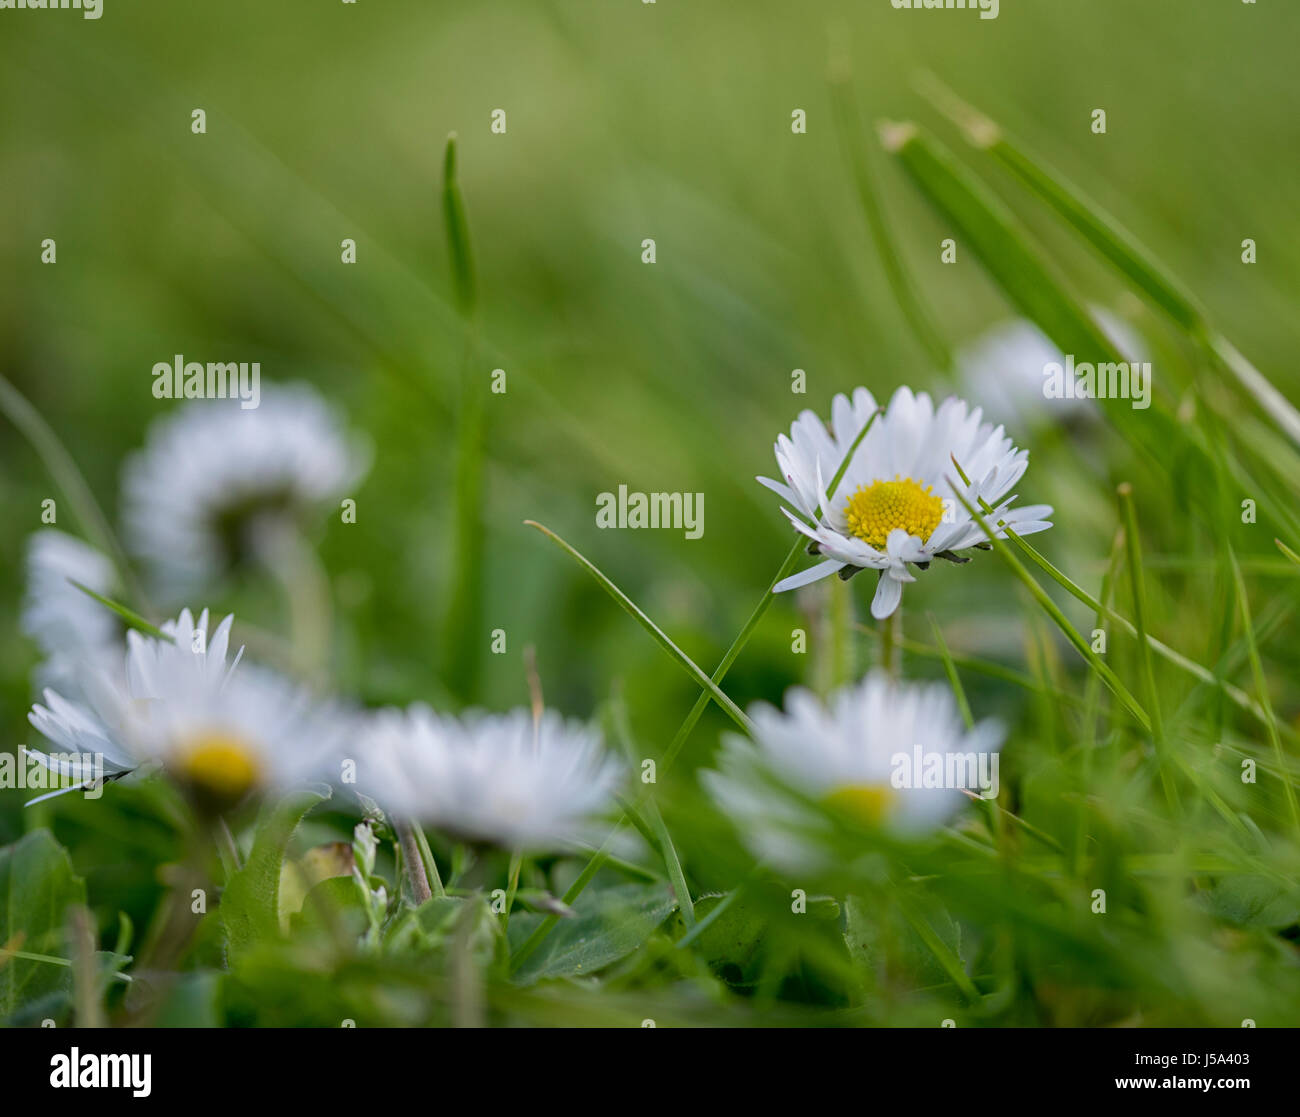 Tiny white flowers stock photos tiny white flowers stock images close up of tiny white and yellow flowers partially hidden among blades of green grass dhlflorist Image collections